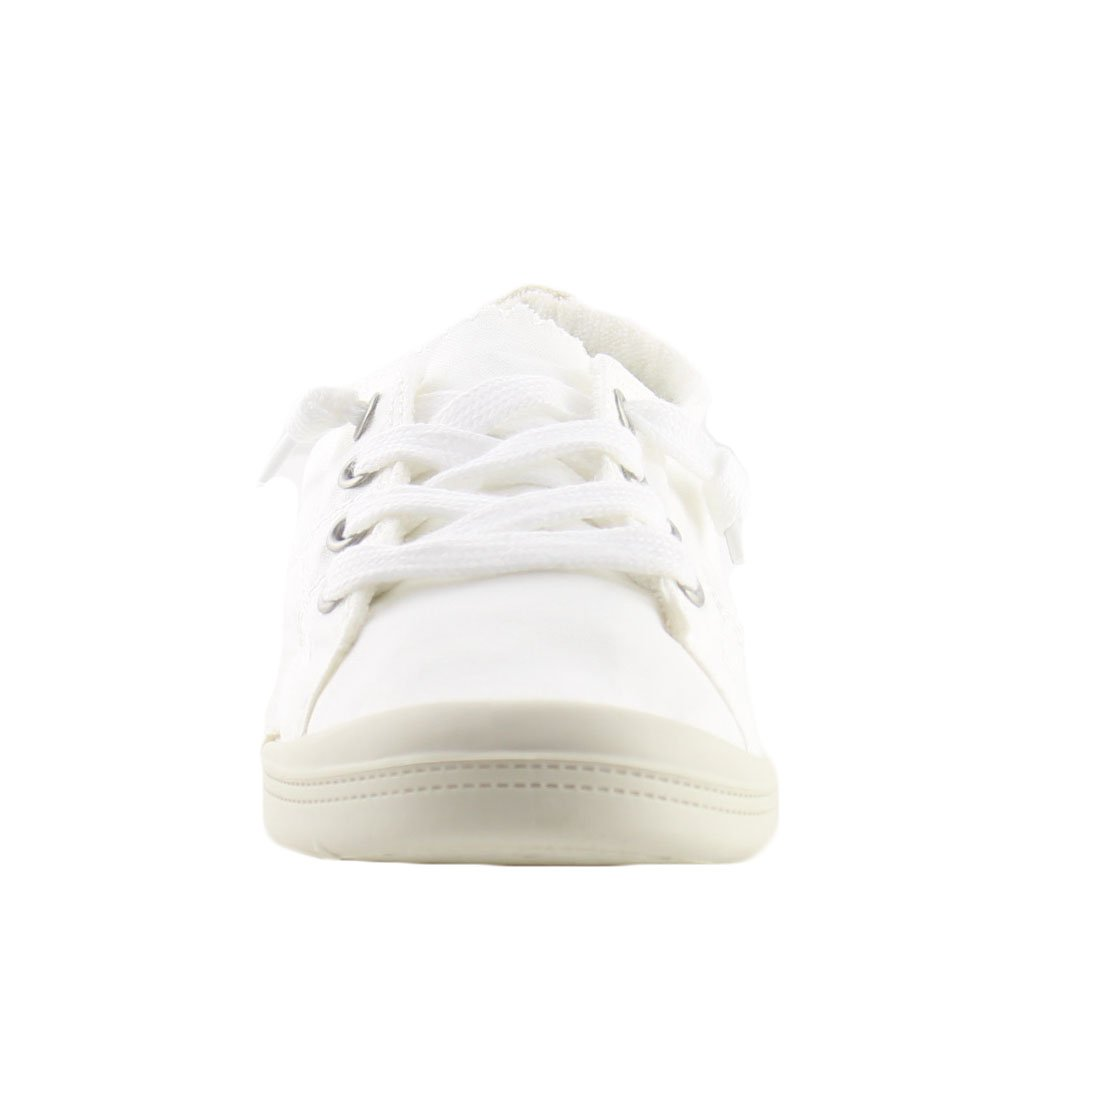 Forever FQ76 Women's Lace up White Sole Casual Street Sneakers B07BF9NS3T 8 B(M) US|White